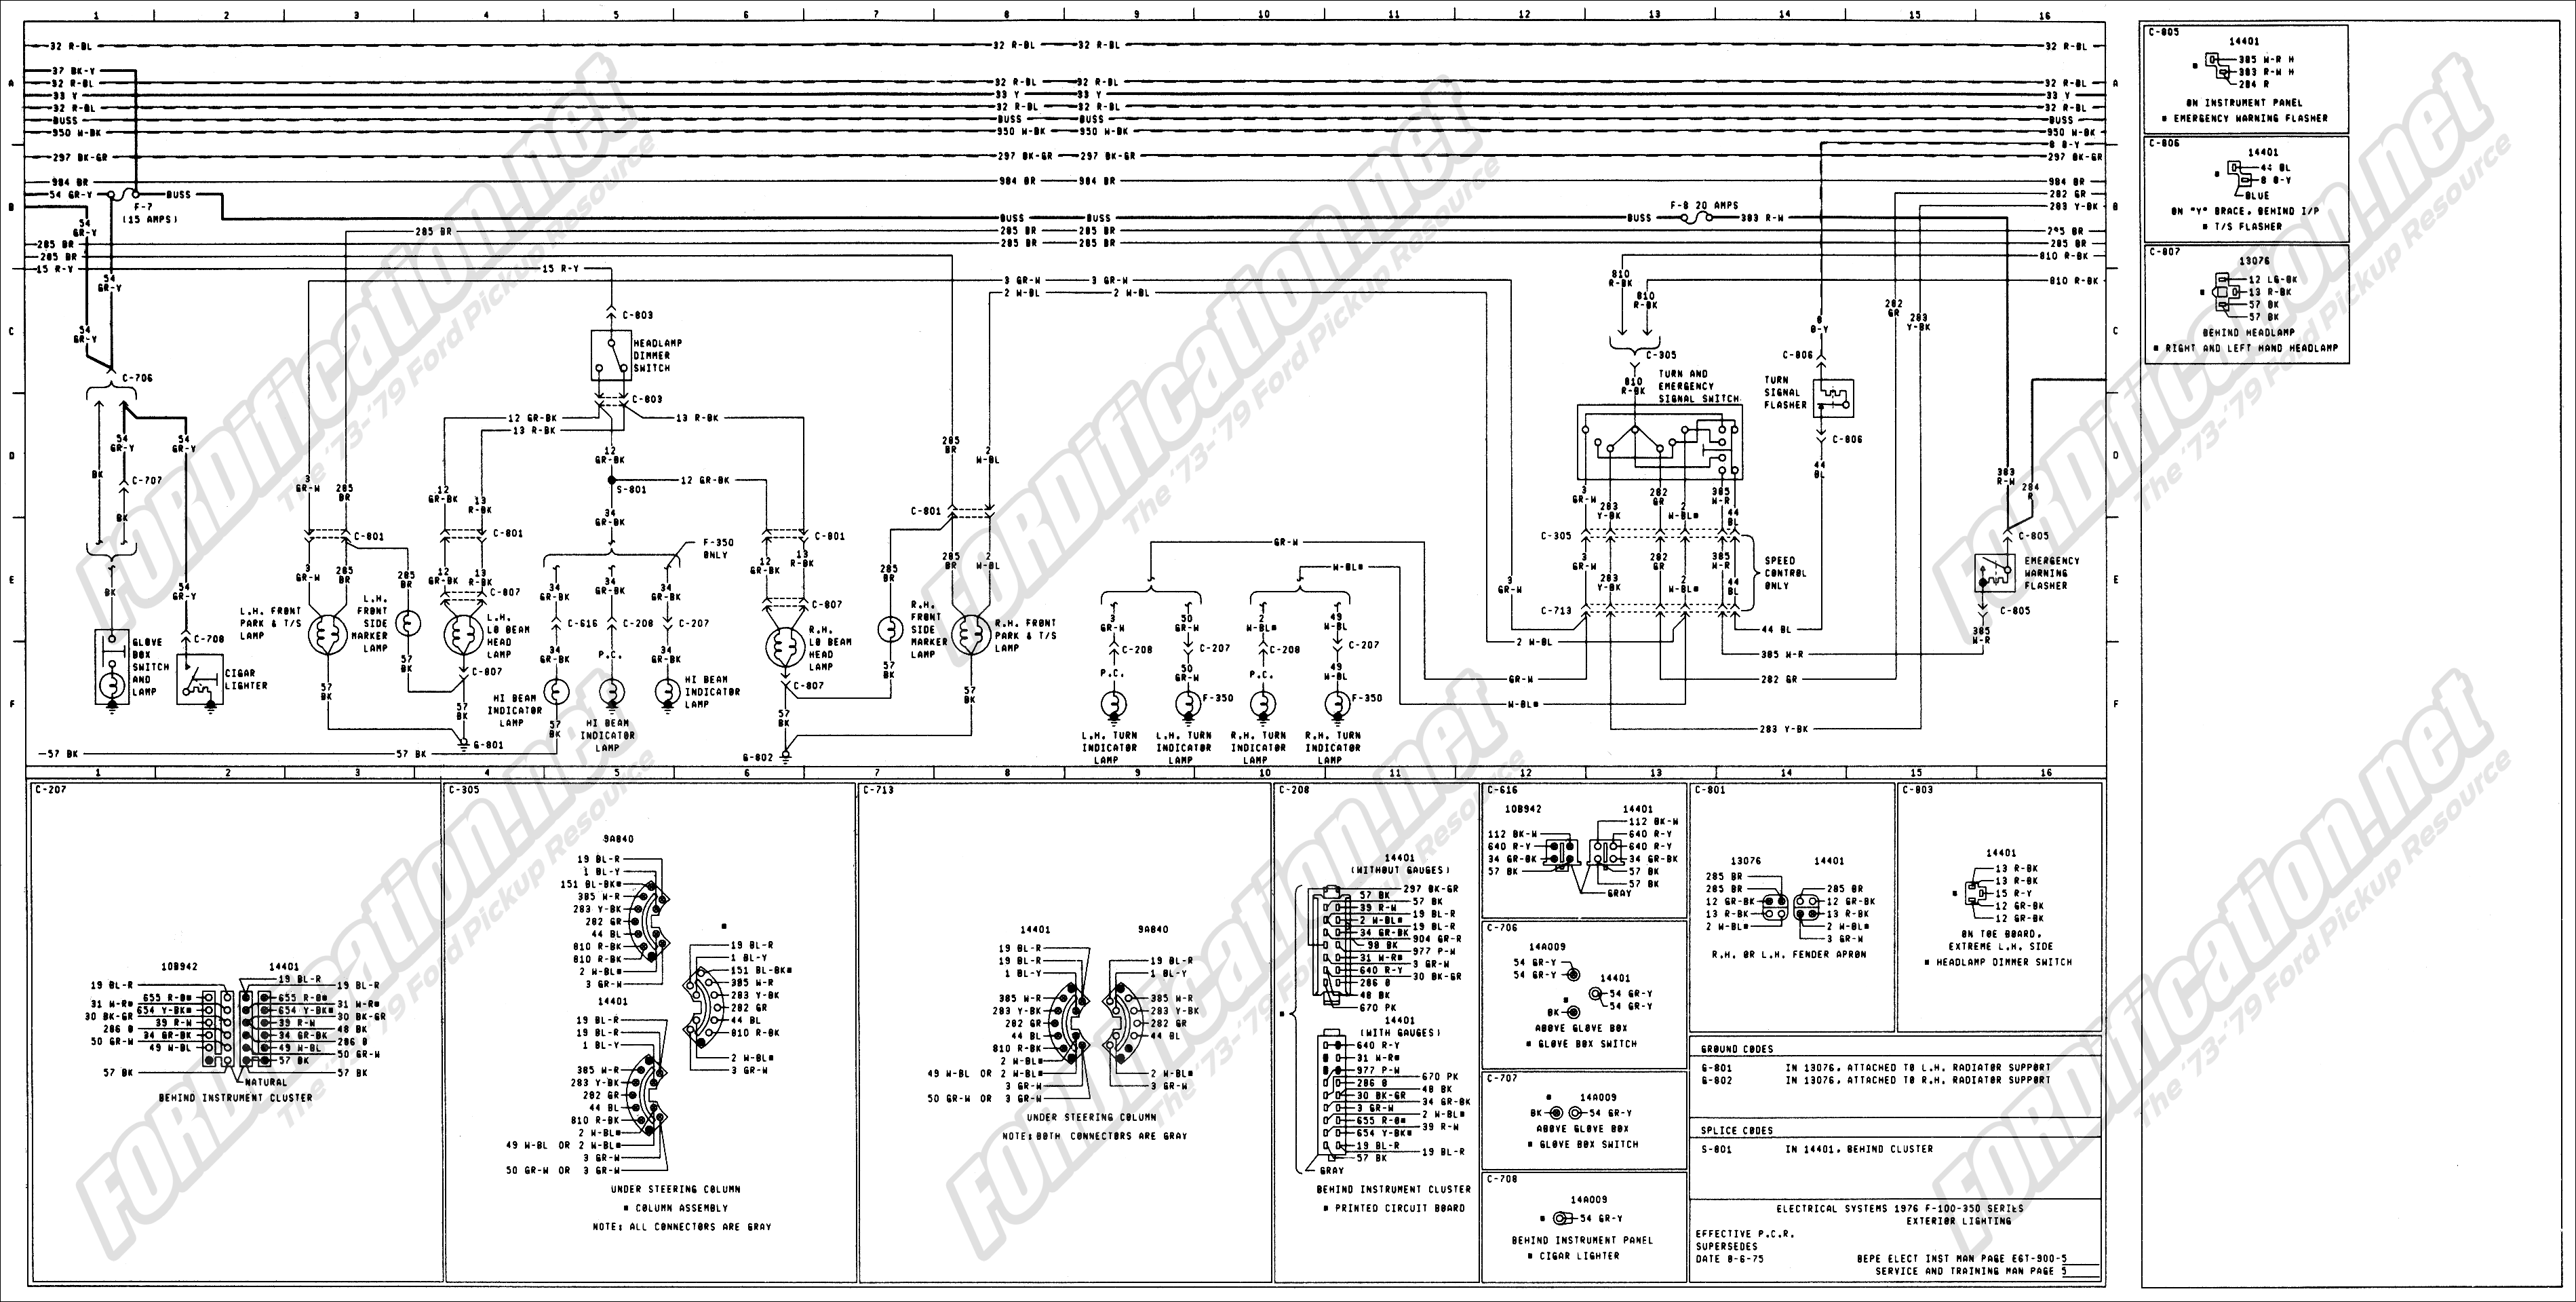 1973-1979 Ford Truck Wiring Diagrams & Schematics - FORDification.netFORDification.net